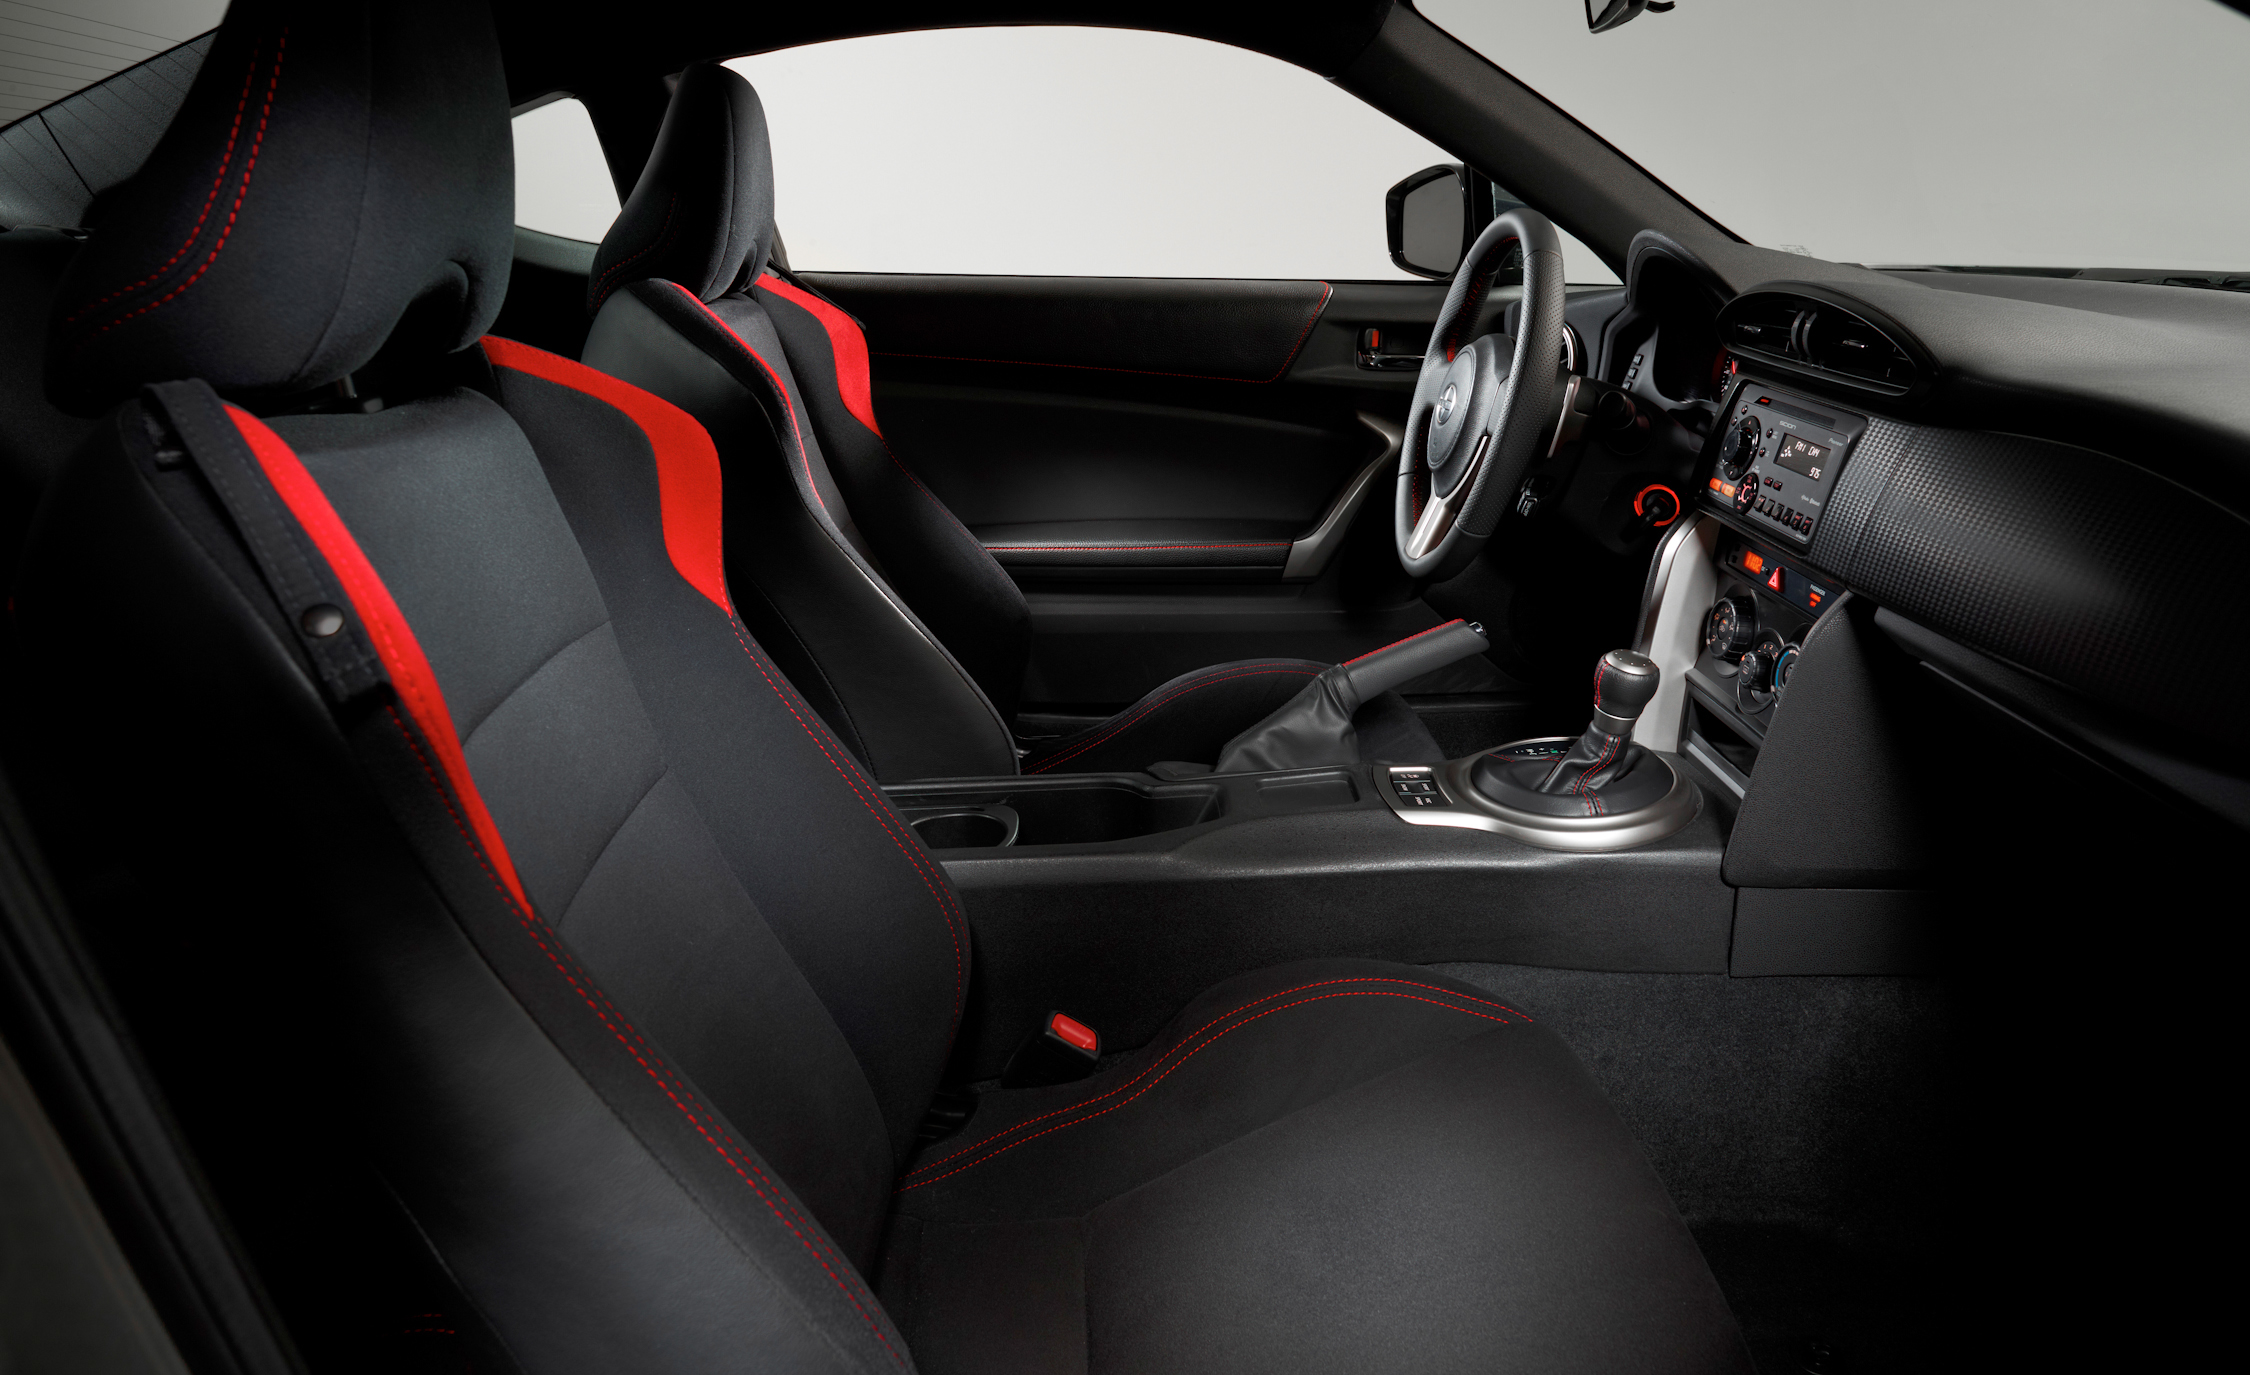 2013 Scion FR S Interior Seats Front (Photo 23 of 47)